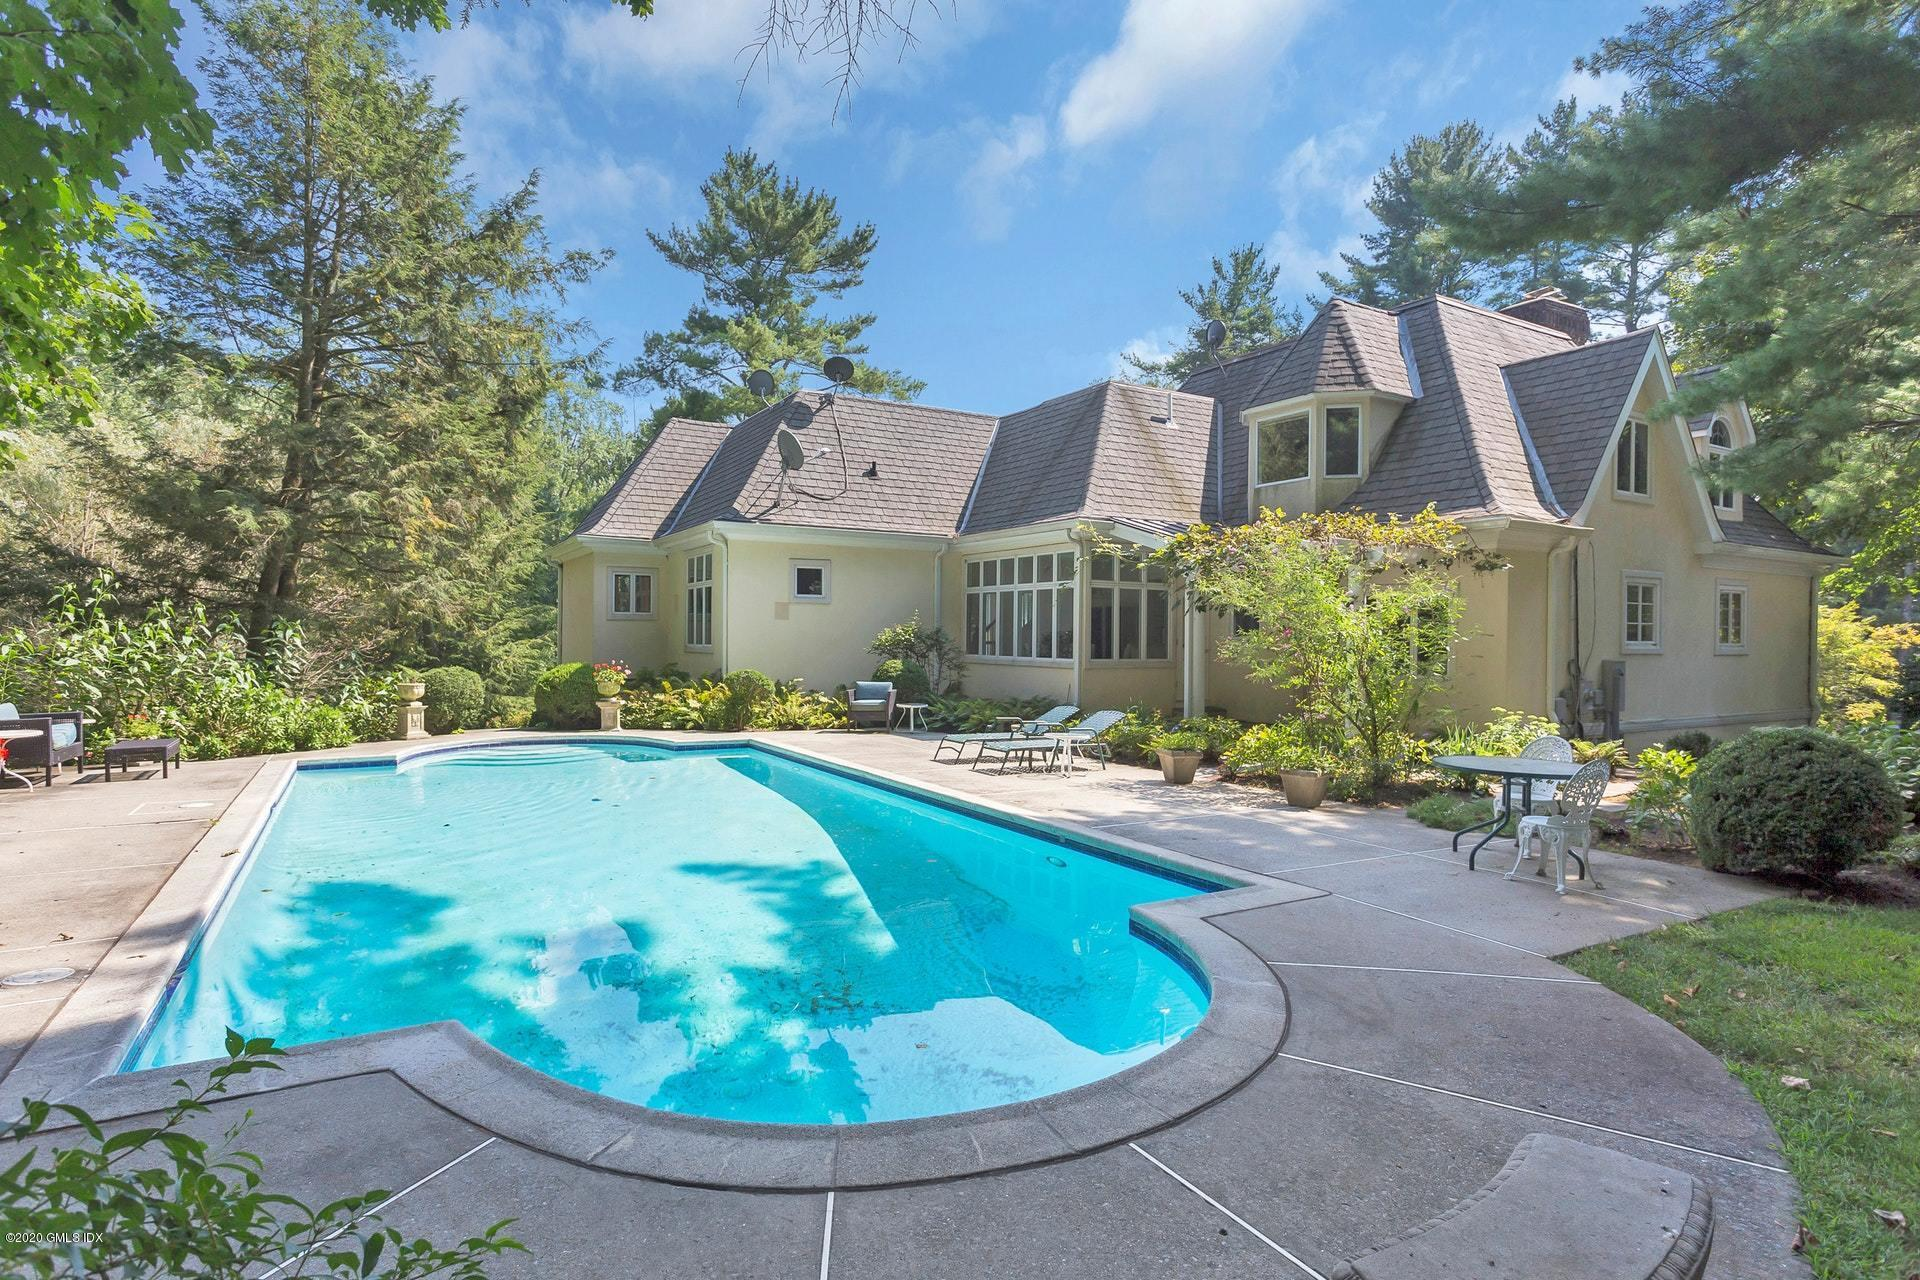 167 Bedford Road, Greenwich, Connecticut 06831, 5 Bedrooms Bedrooms, ,4 BathroomsBathrooms,Single family,For sale,Bedford,111797